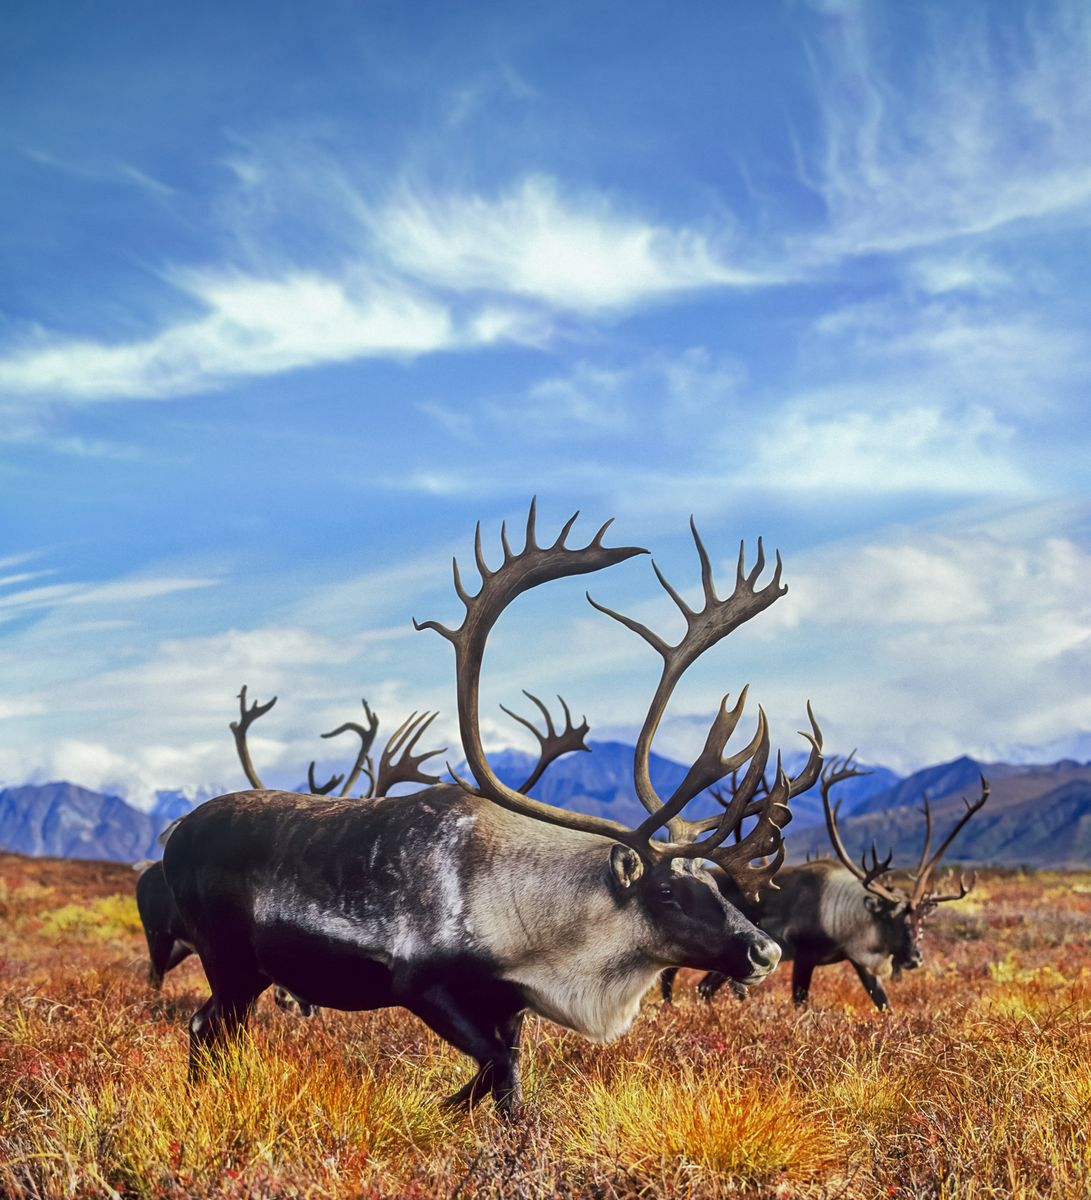 Slide 3 of 33: Caribou migrating through the tundra of Denali National Park.